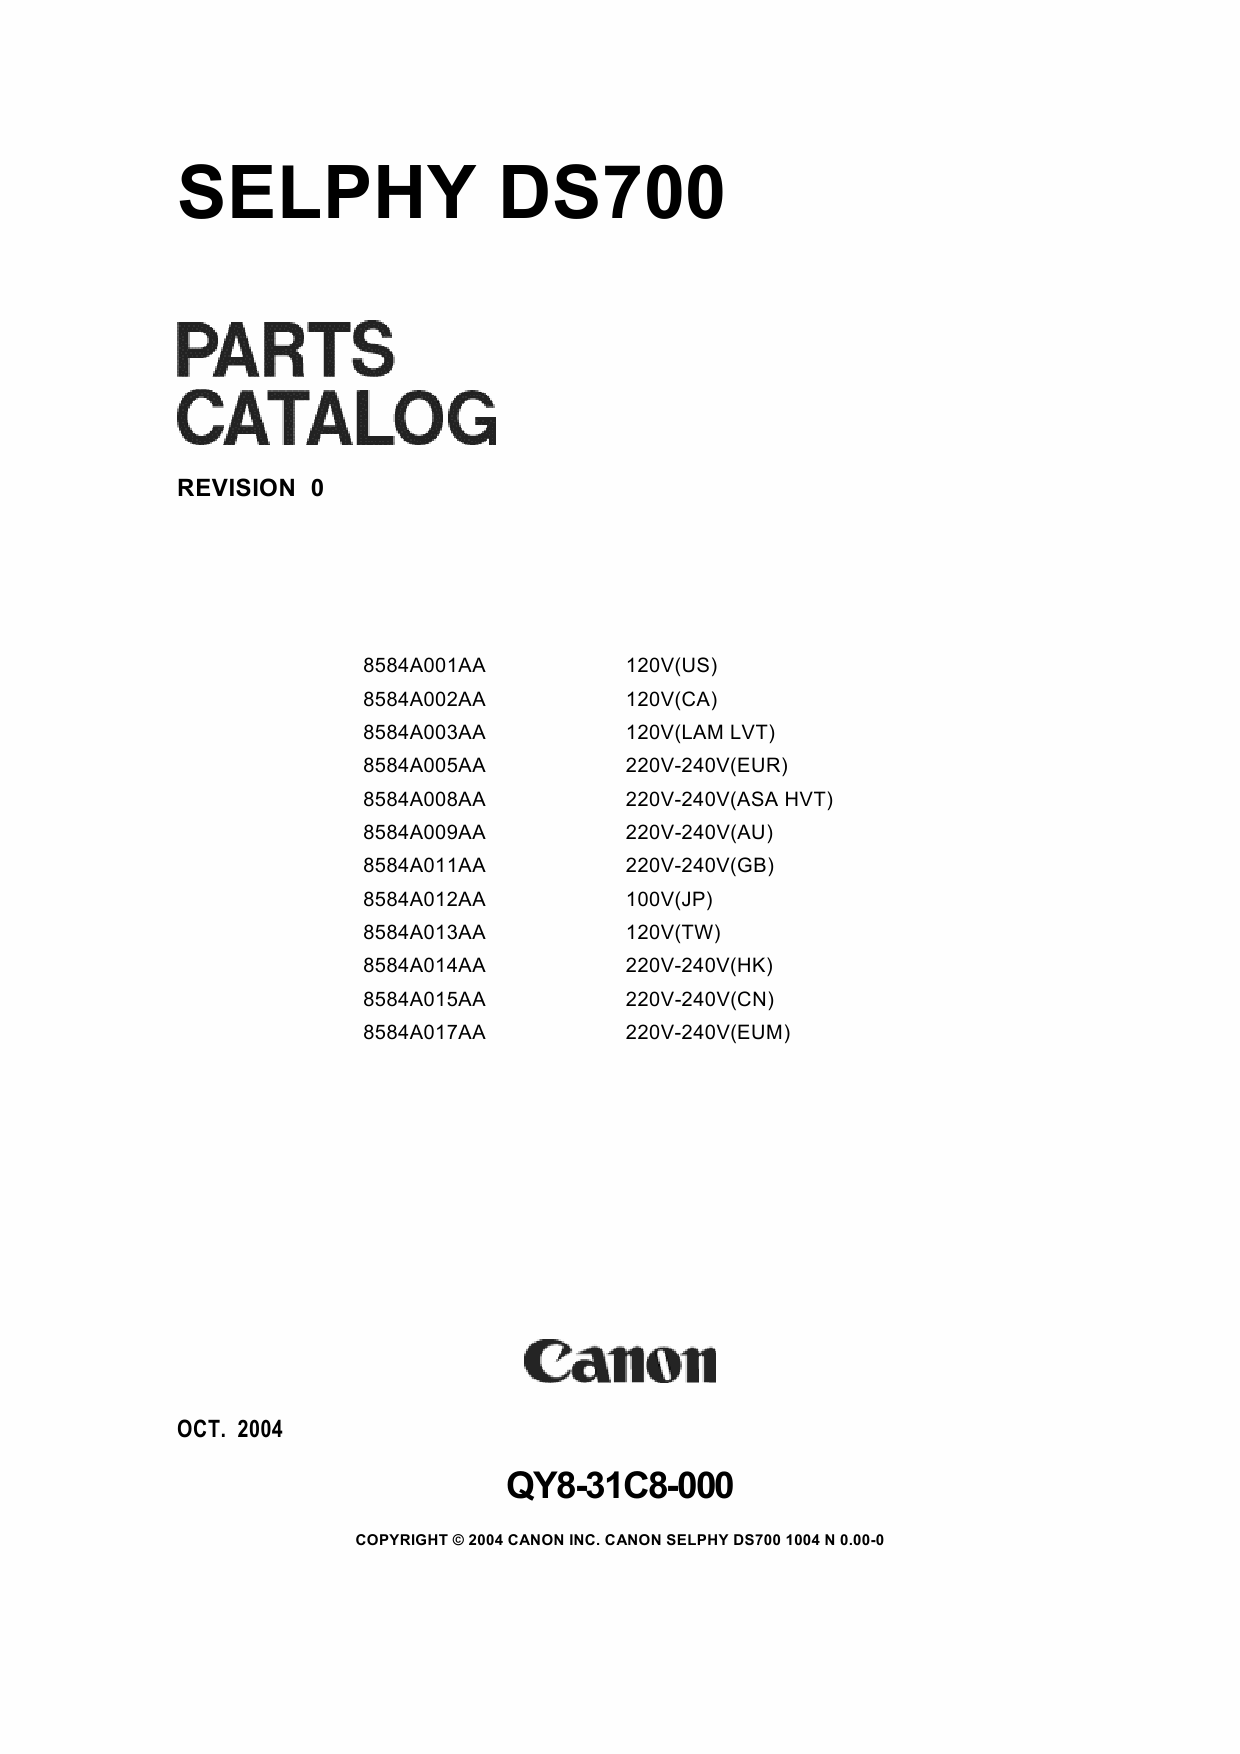 Canon SELPHY DS700 Parts Catalog Manual-1